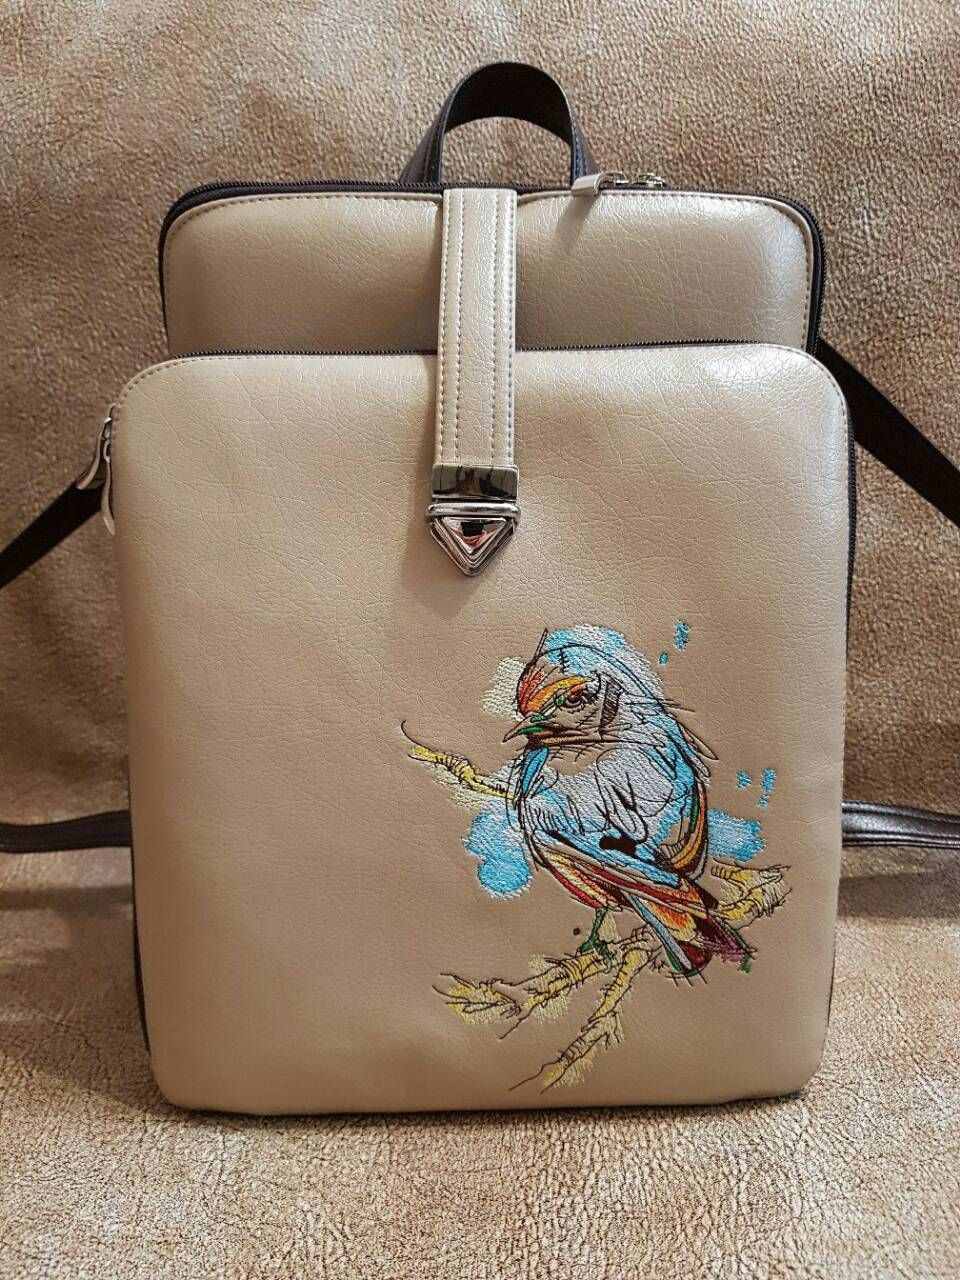 61d7655a2806 Stylish modern ladies bag with European goldfinch on tree branch embroidery   Europeangoldfinch  treebranch  embroideres  Stylish  modern  ladiesbag